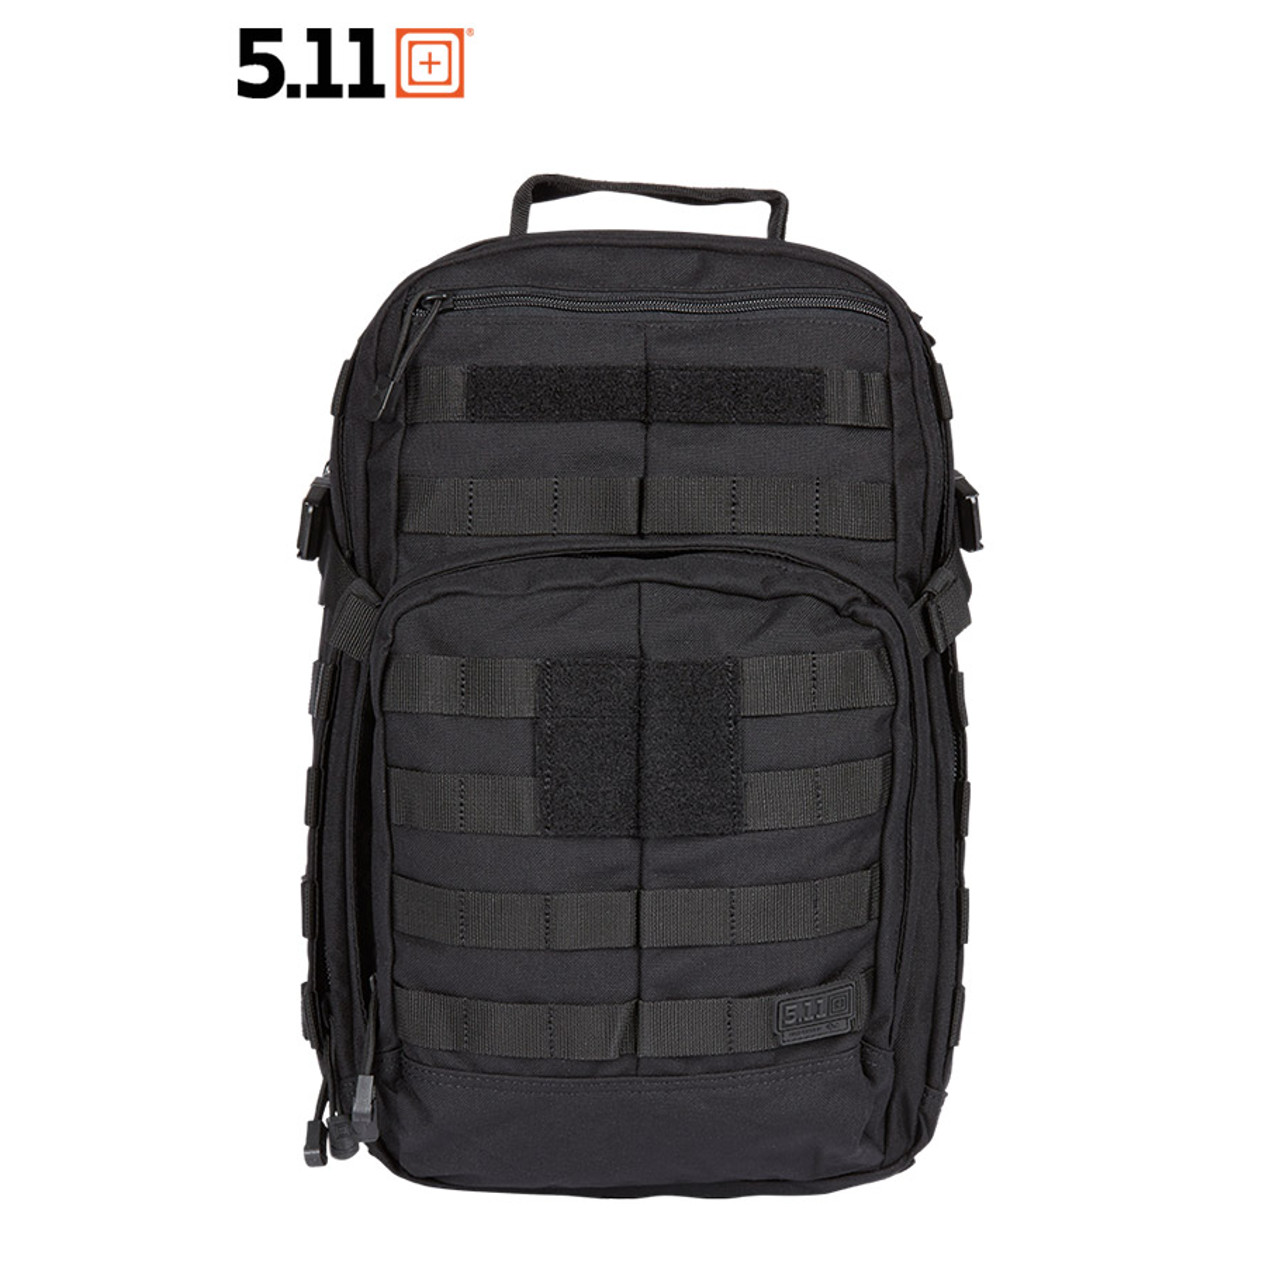 5.11 Rucksack RUSH12 in black